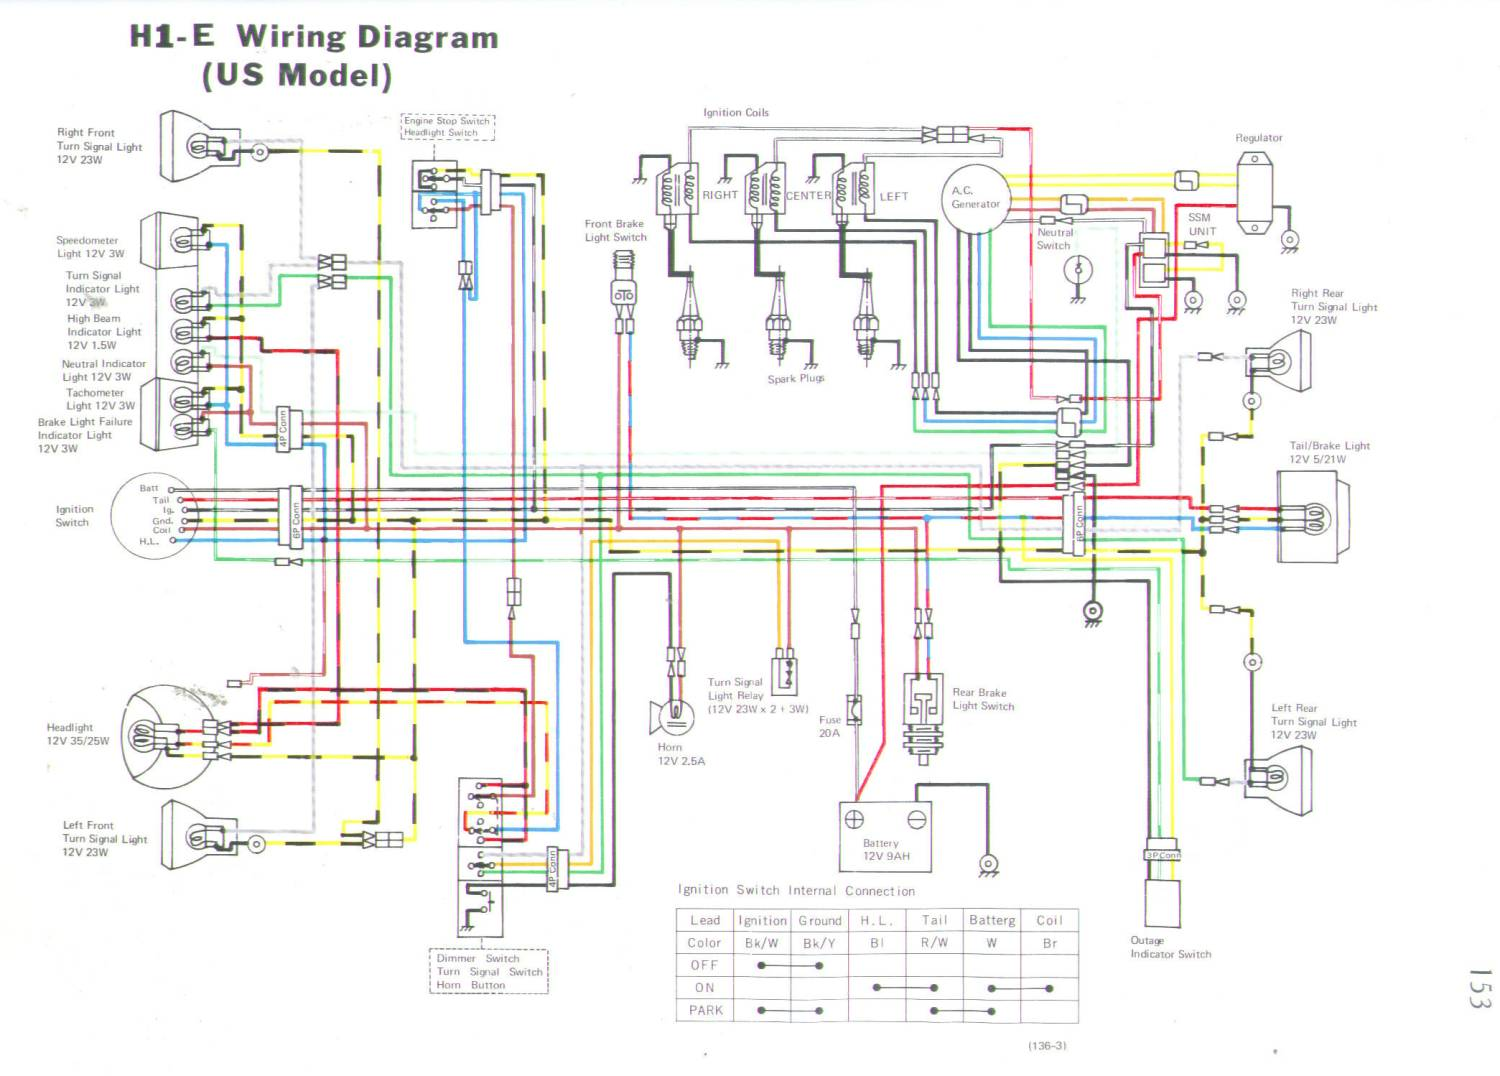 hight resolution of h1 fuse diagram wiring diagram experth1 fuse diagram wiring diagram load hyundai h1 fuse box diagram